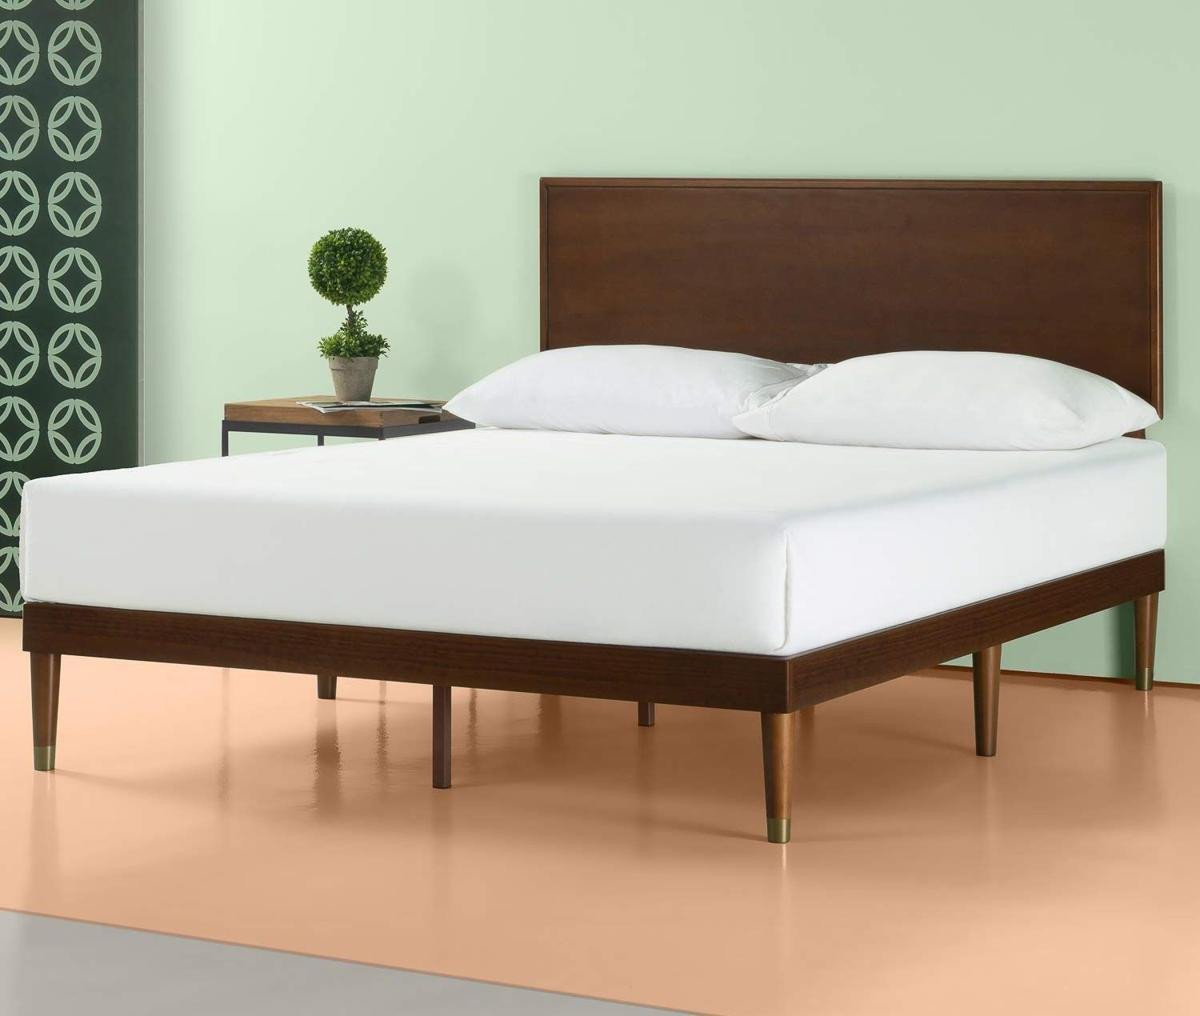 Full Size Bedroom Furniture Best Of Get A West Elm Look for Under $300 with This Mid Century Bed